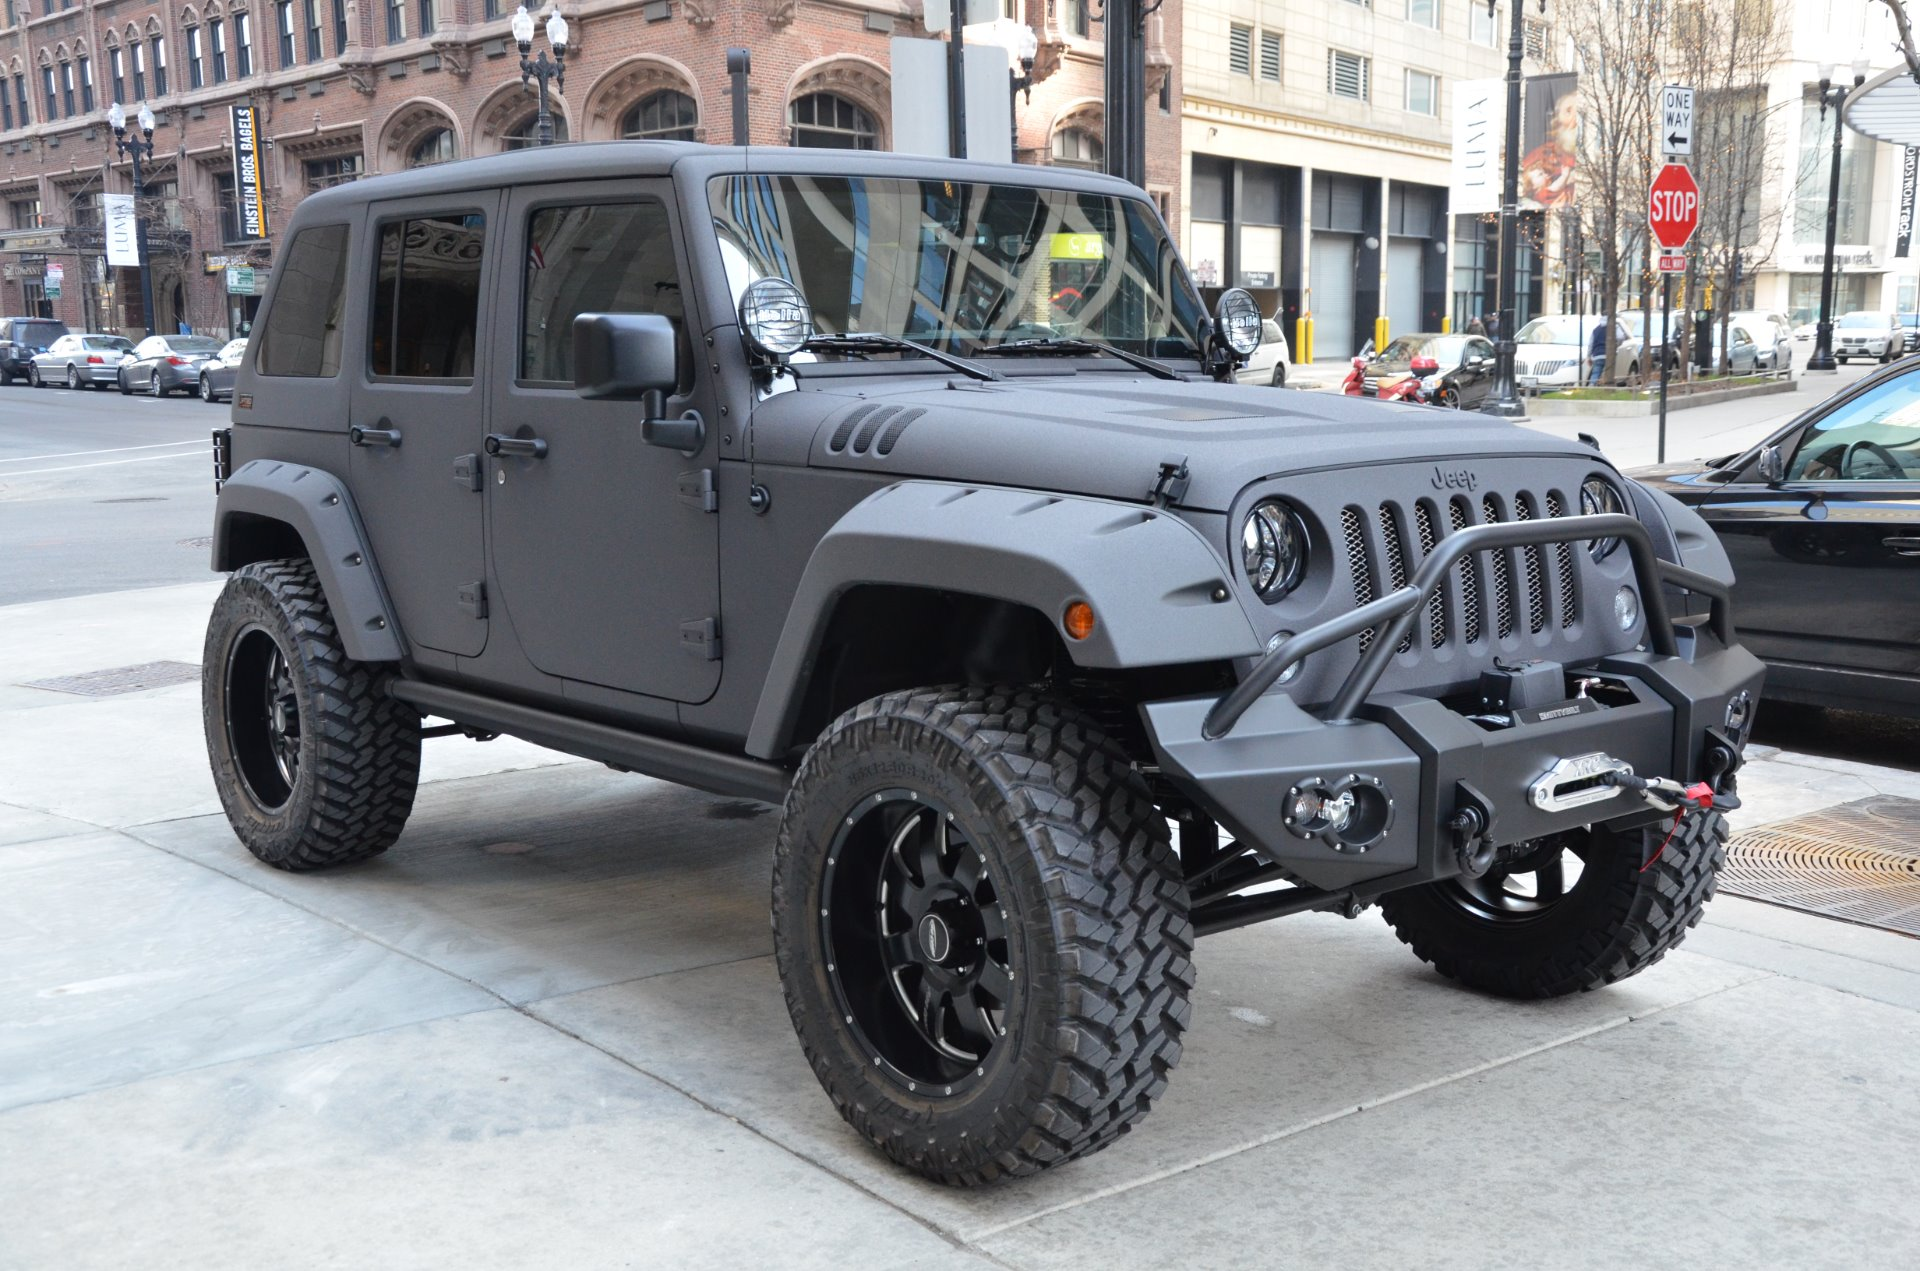 2015 jeep wrangler unlimited rubicon stock gc chris40 for sale near chicago il il jeep dealer. Black Bedroom Furniture Sets. Home Design Ideas